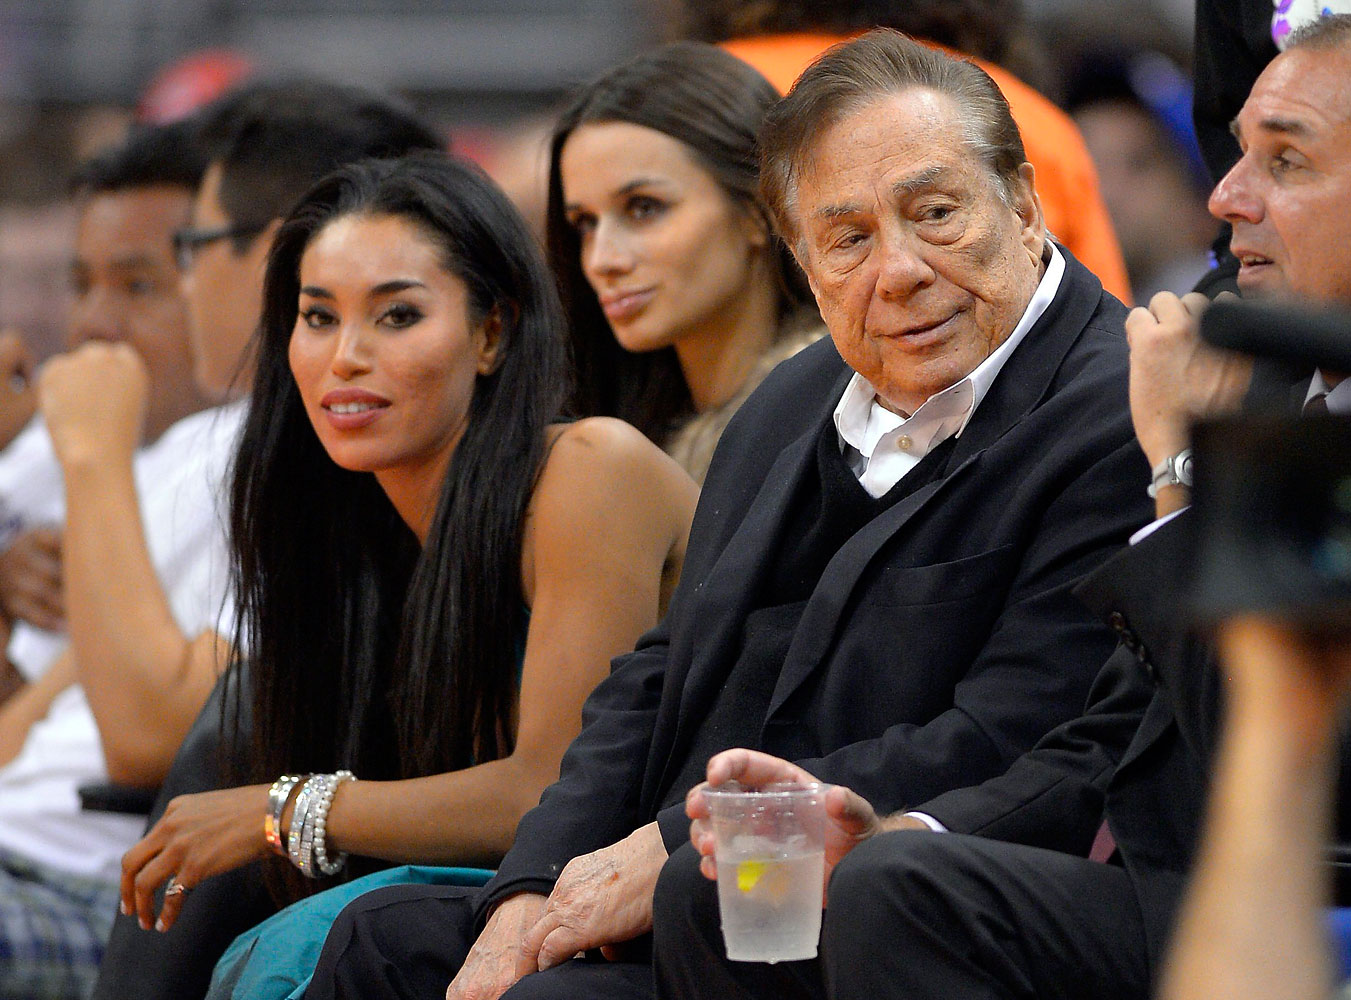 Los Angeles Clippers owner Donald Sterling and V. Stiviano watch the Clippers play the Sacramento Kings during an NBA game in Los Angeles on Oct. 25, 2013